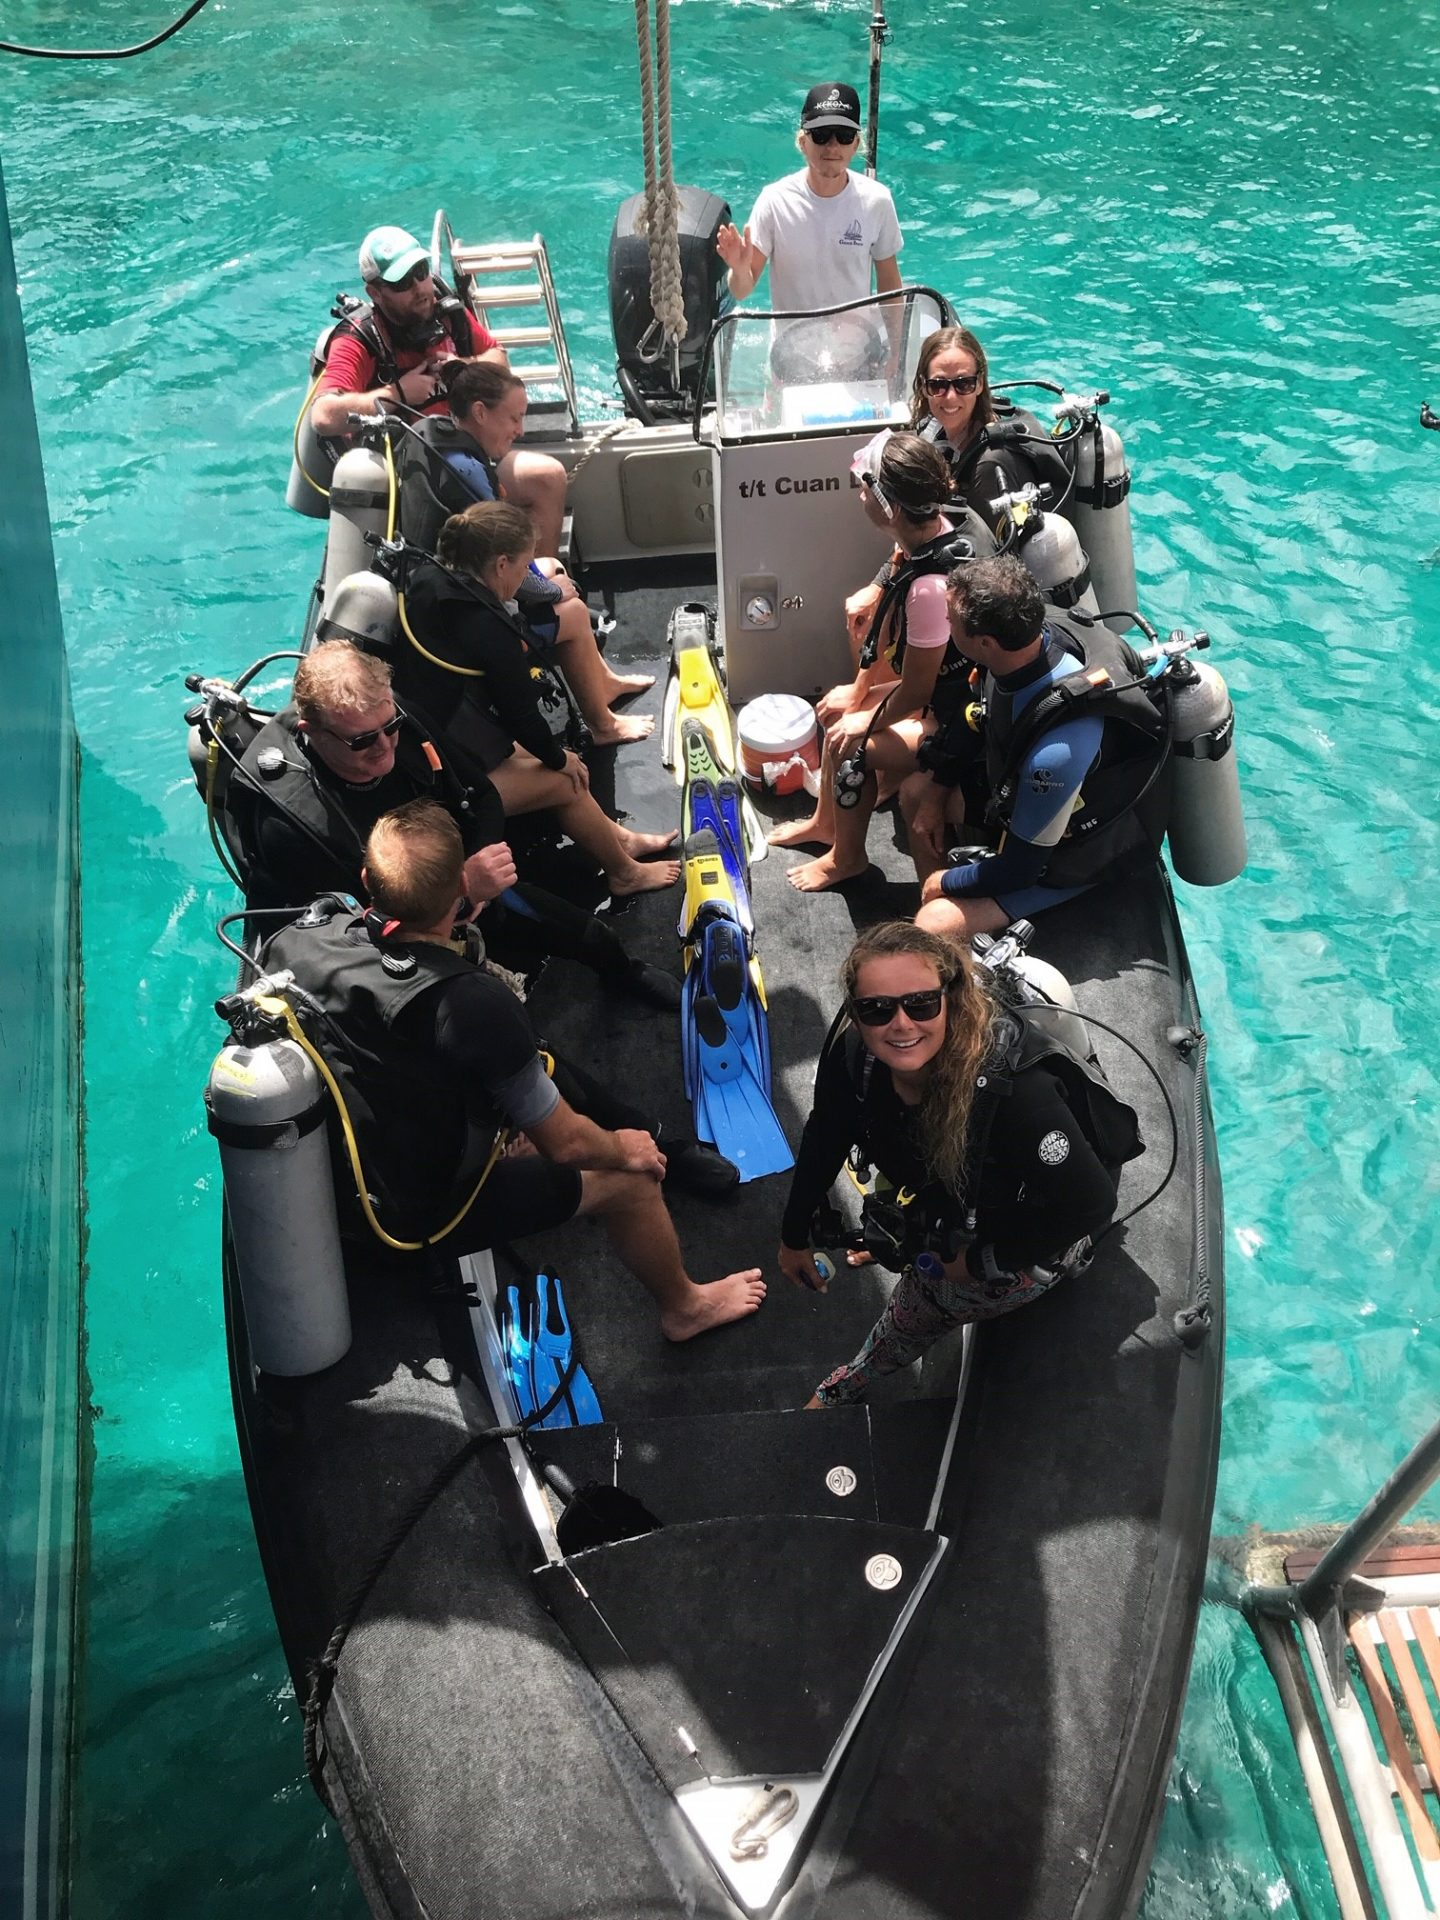 Diving aboard Cuan Law in the British Virgin Islands - Dive group sets off